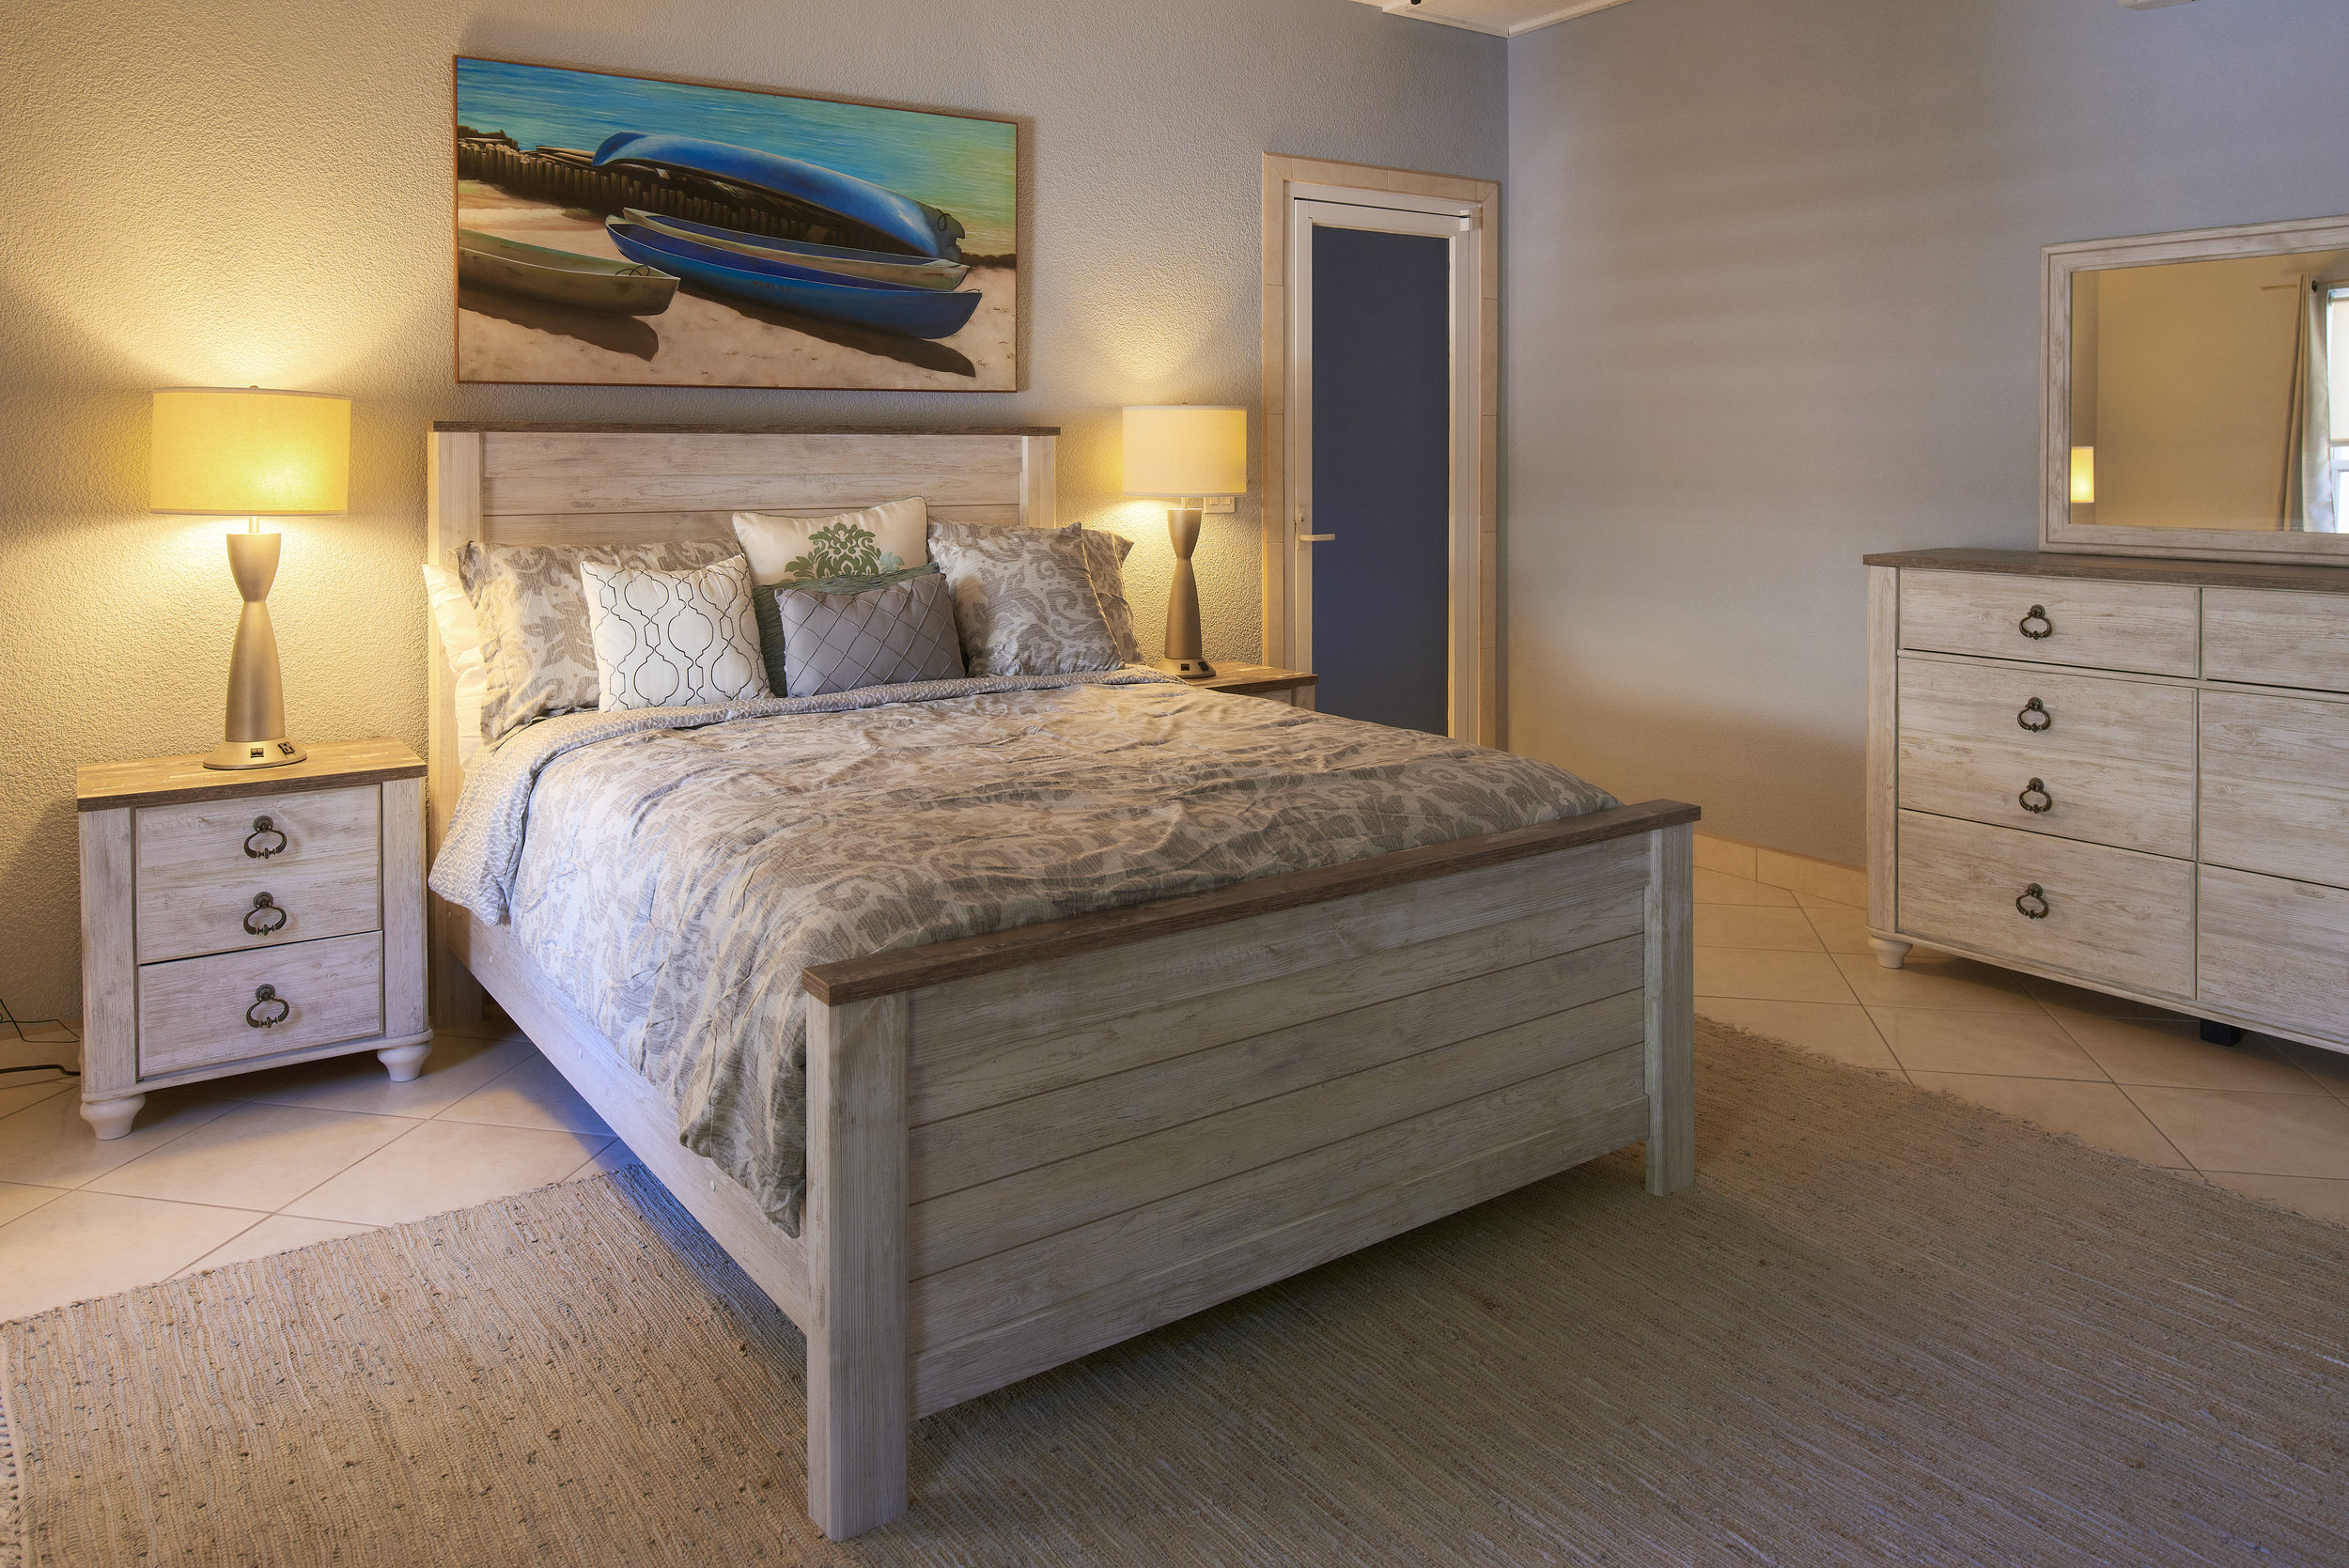 The Emerald -Deluxe Room - An example of our Deluxe Rooms that include Opal and Ruby, emerald is furnished with a Queen sized bed and is designed for cozy comfort.